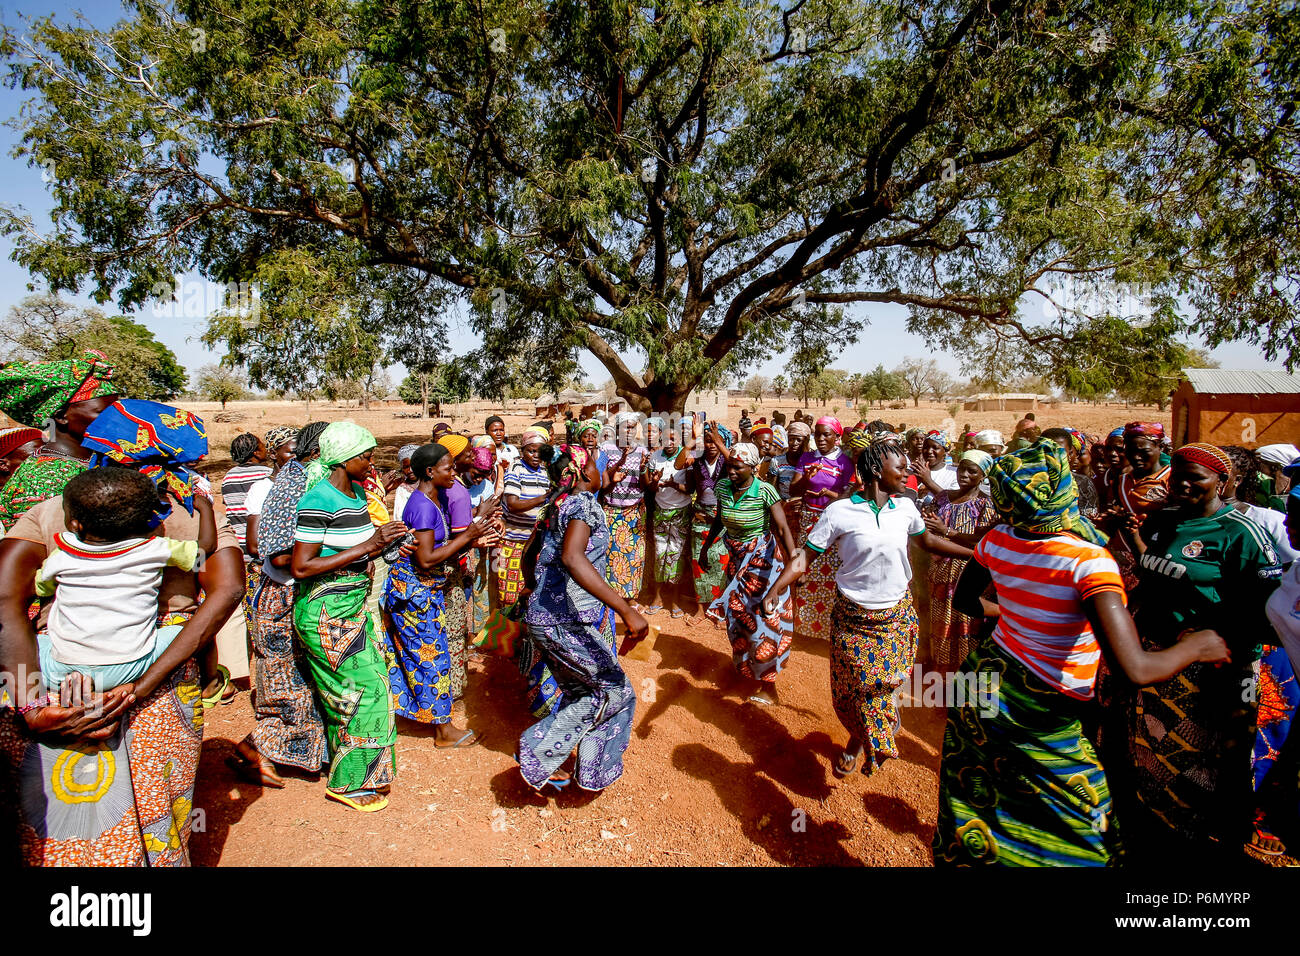 Members of a women's microfinance cooperative welcoming a visitor with dances in Northern Togo. - Stock Image